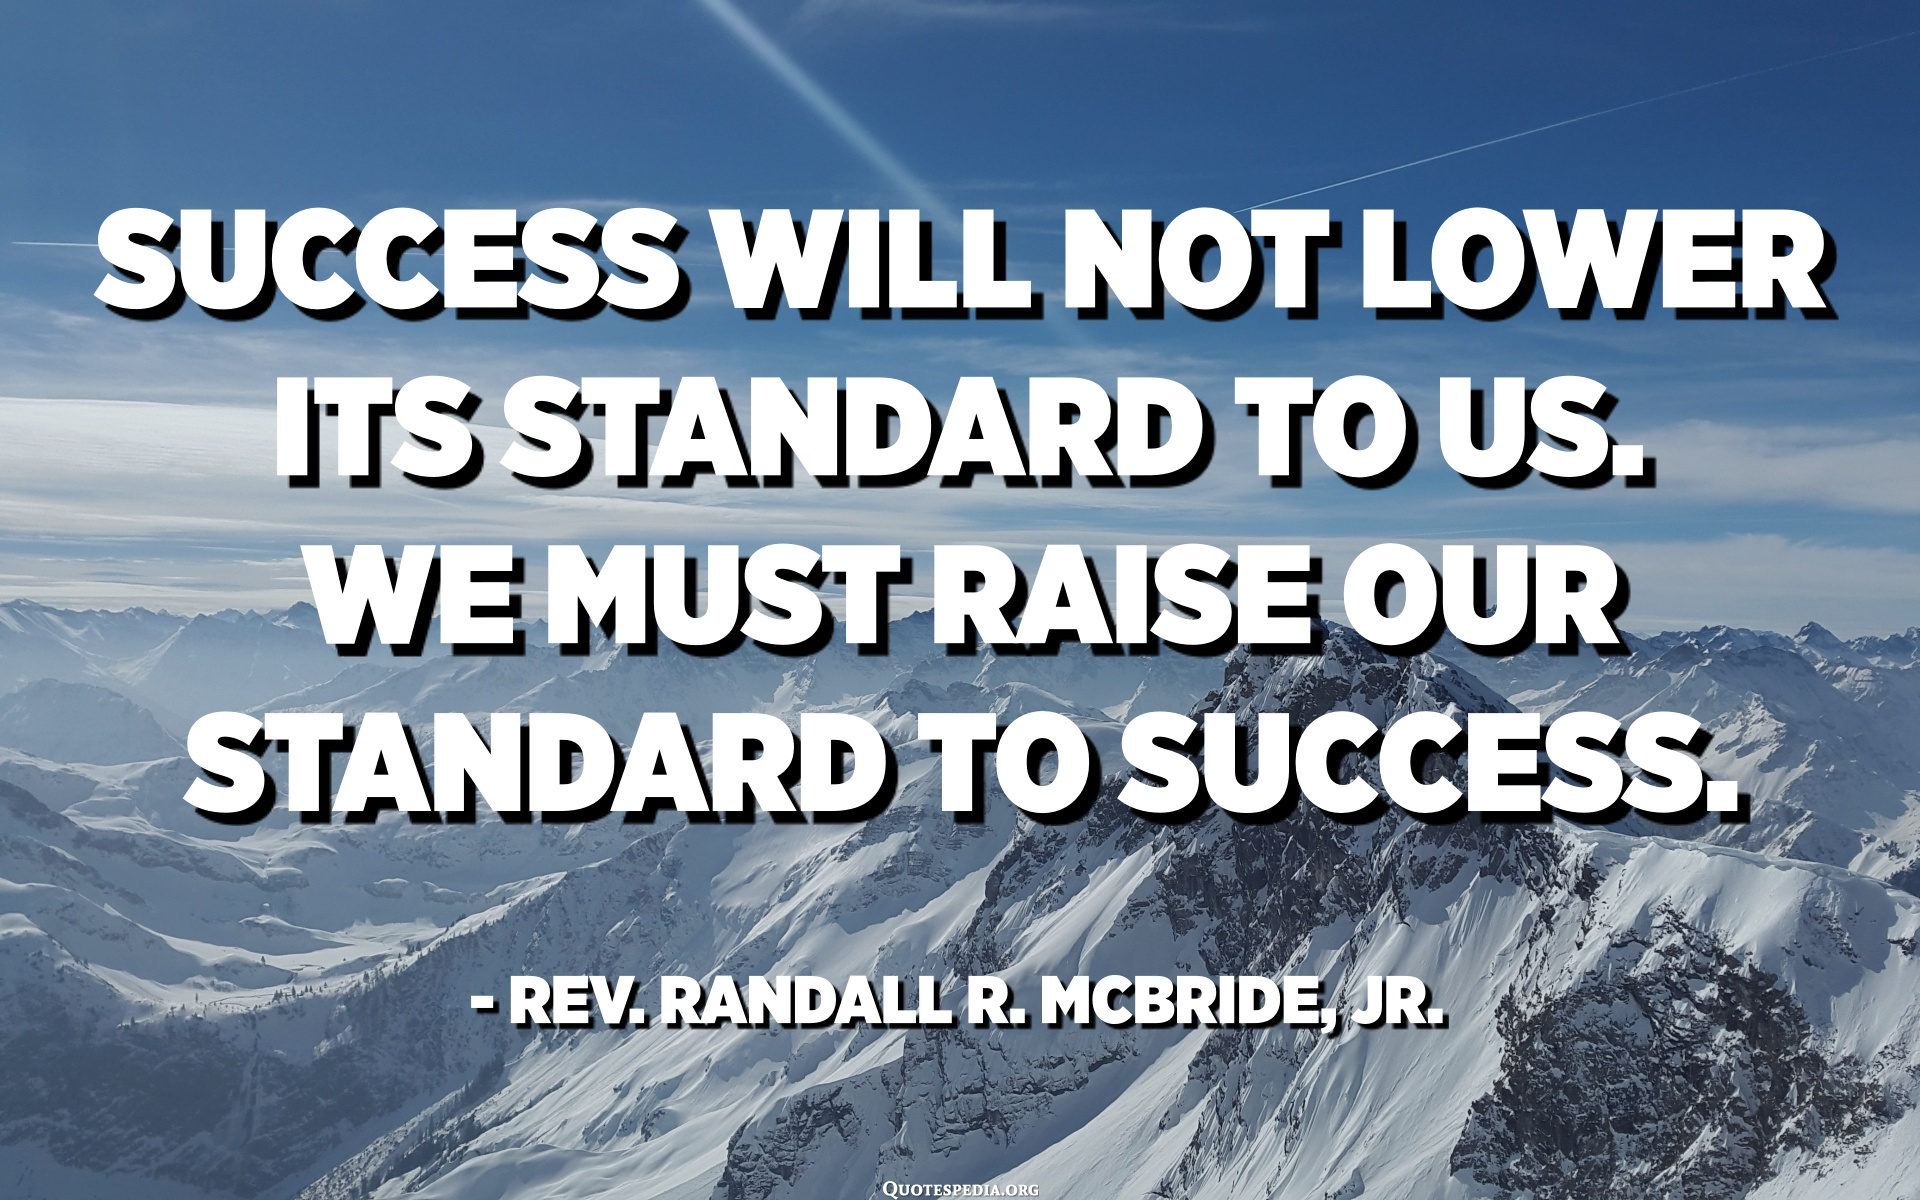 Success will not lower its standard to us. We must raise our standard to  success. - Rev. Randall R. McBride, Jr. - Quotespedia.org